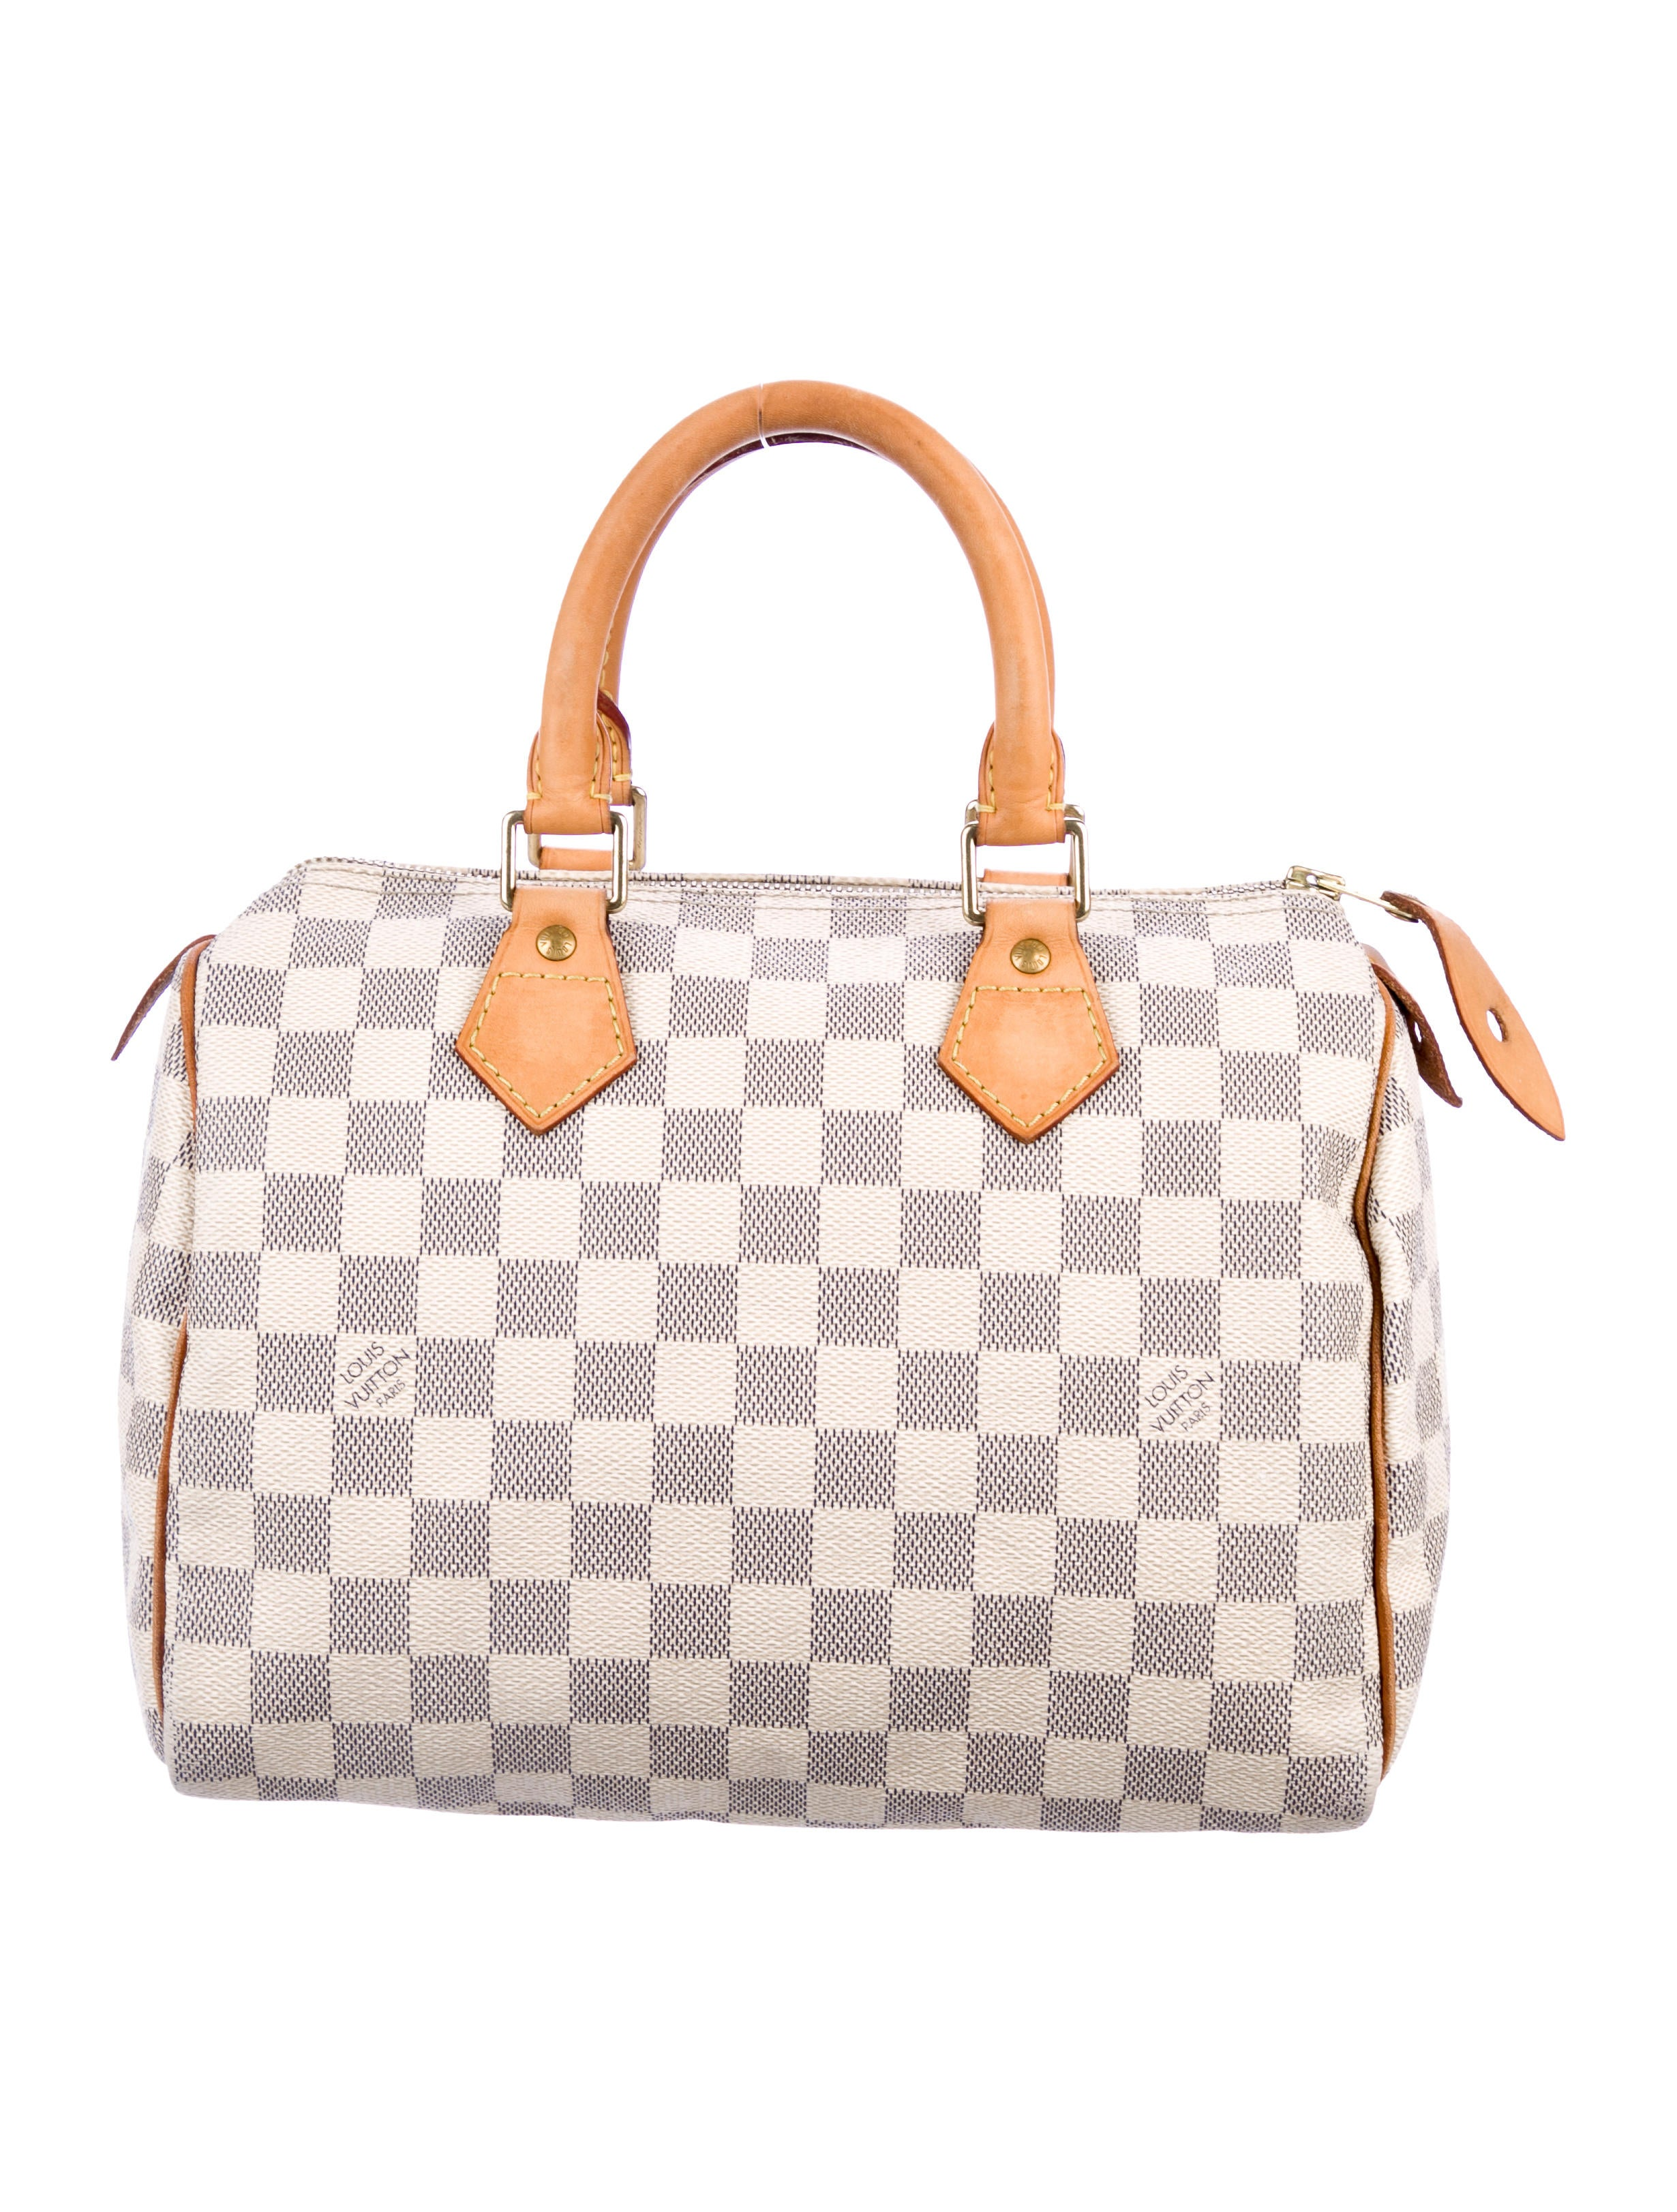 57ea129239f8 Louis Vuitton Damier Azur Speedy 25 - Handbags - LOU226631